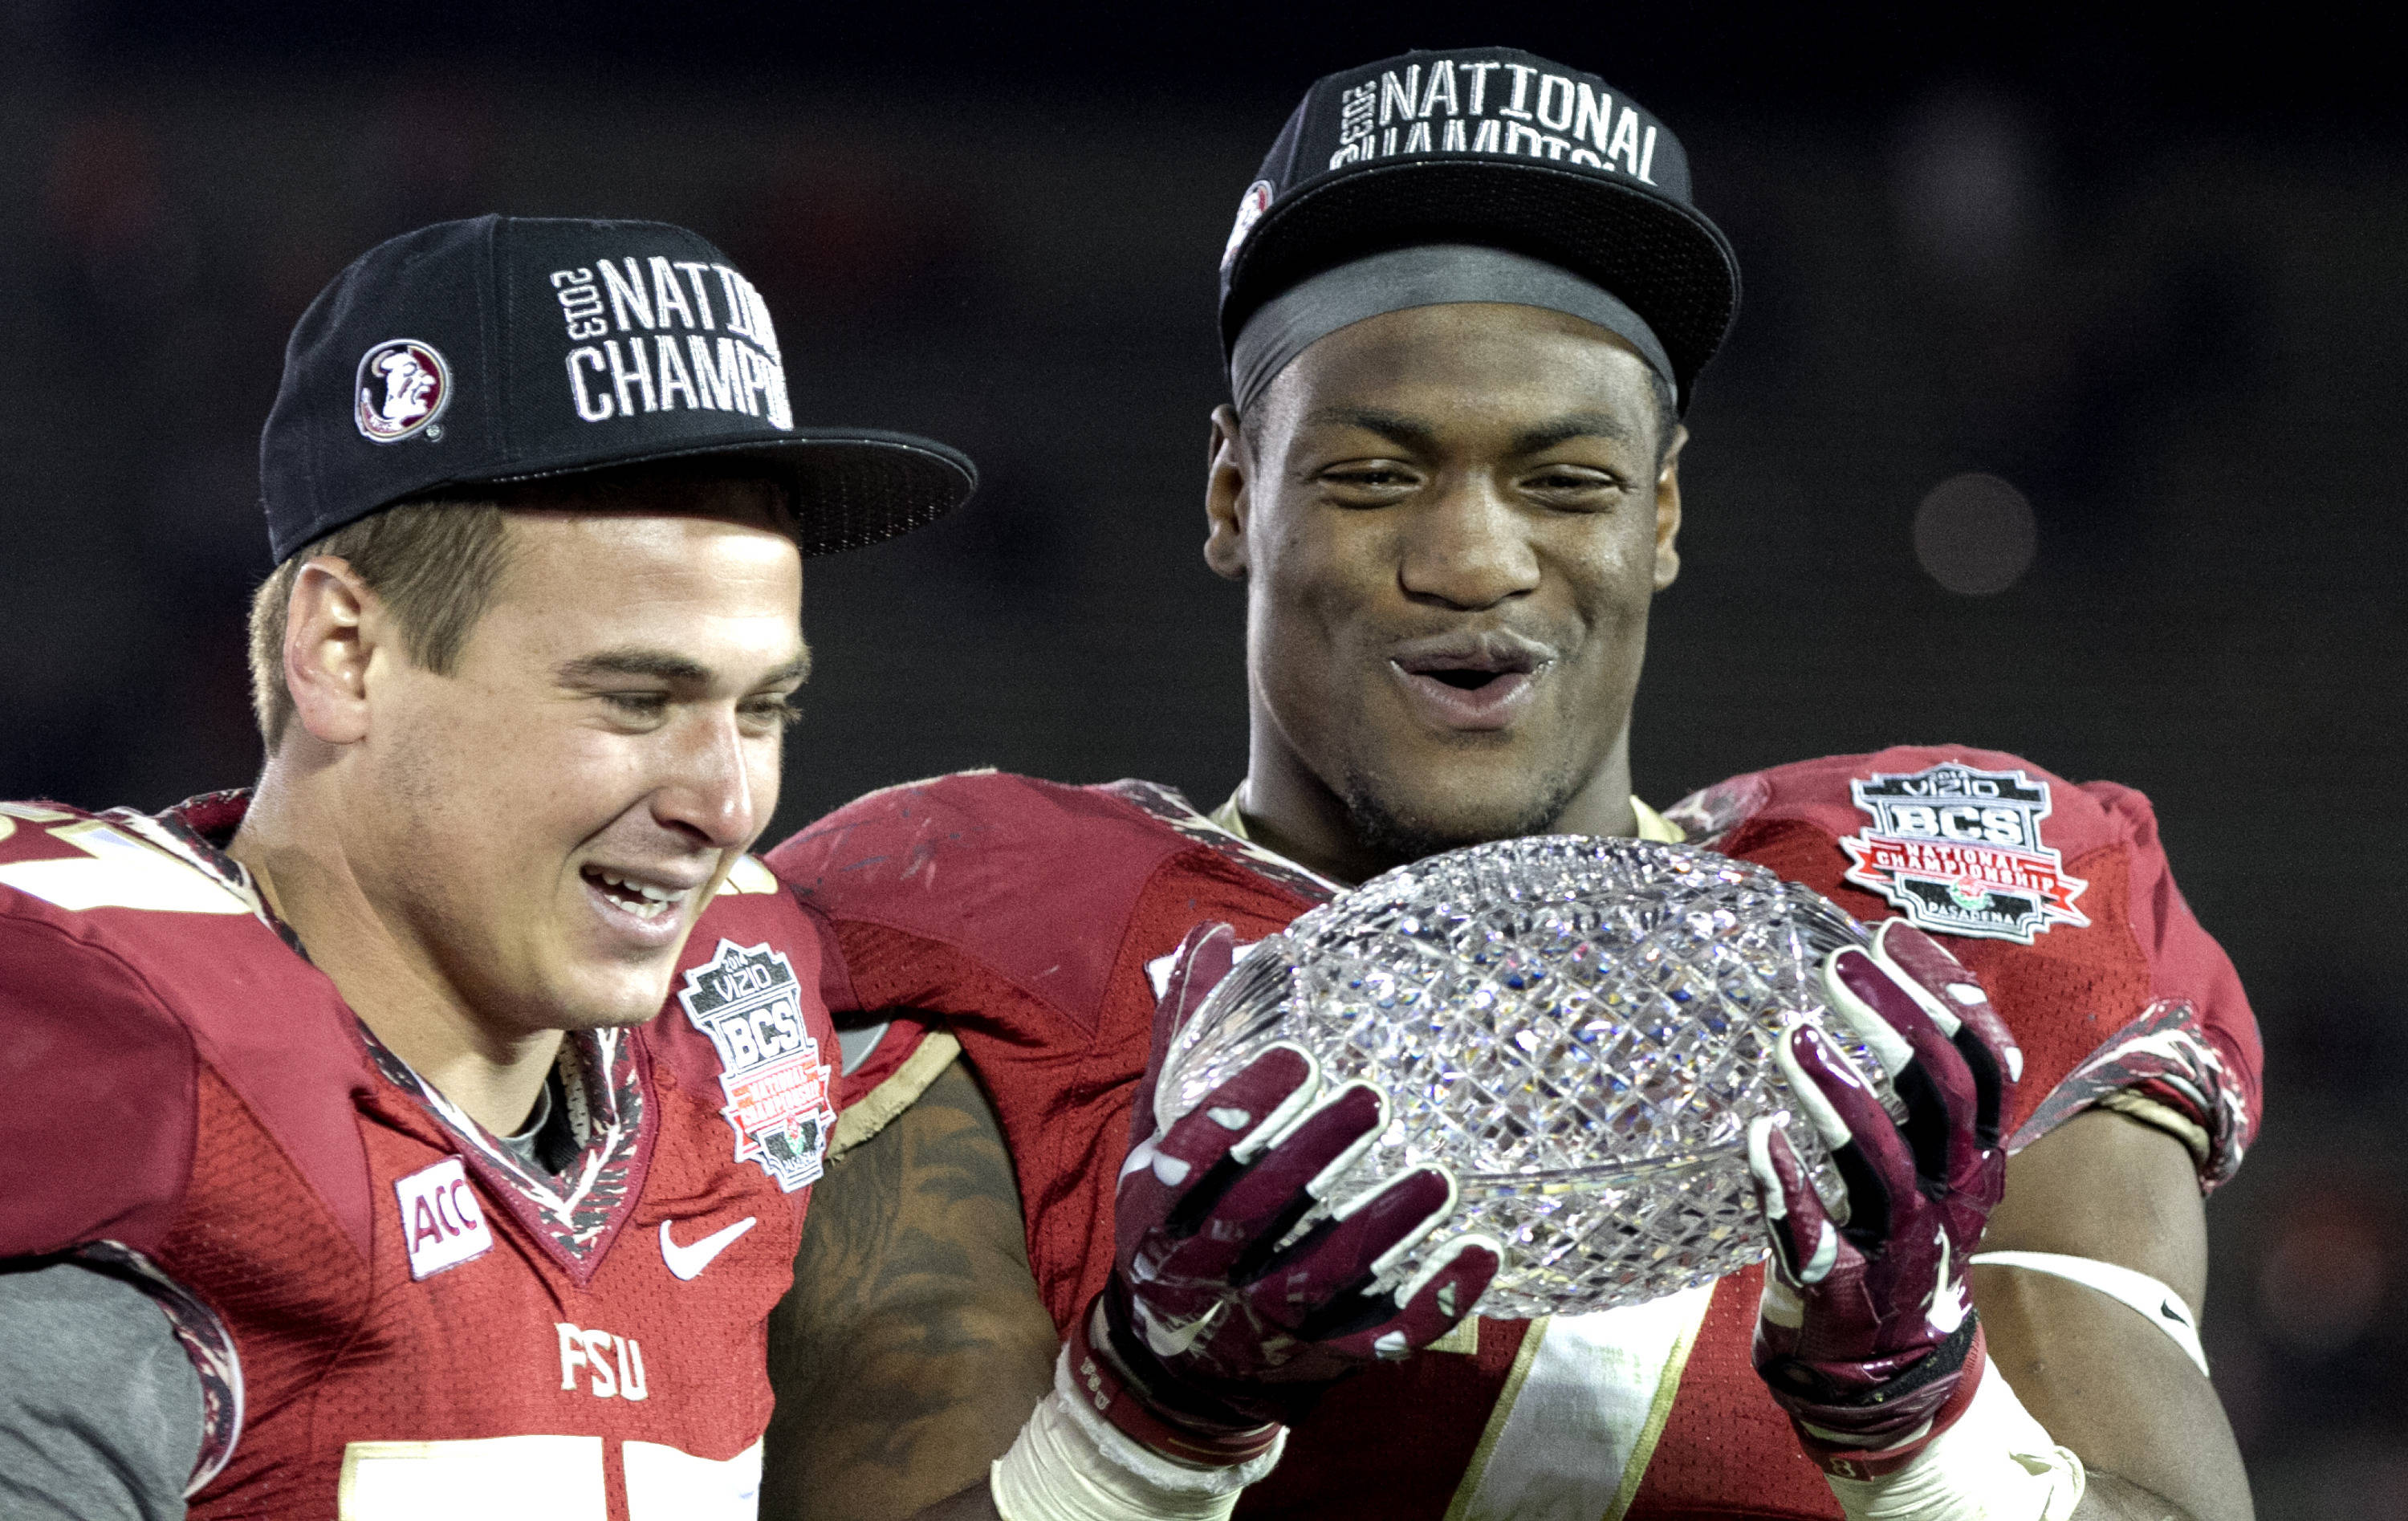 Philip Doumar (57) and Christian Jones (7) enjoying a trophy moment, BCS Championship, FSU vs Auburn, Rose Bowl, Pasadena, CA,  1-06-14,  (Photo by Steve Musco)